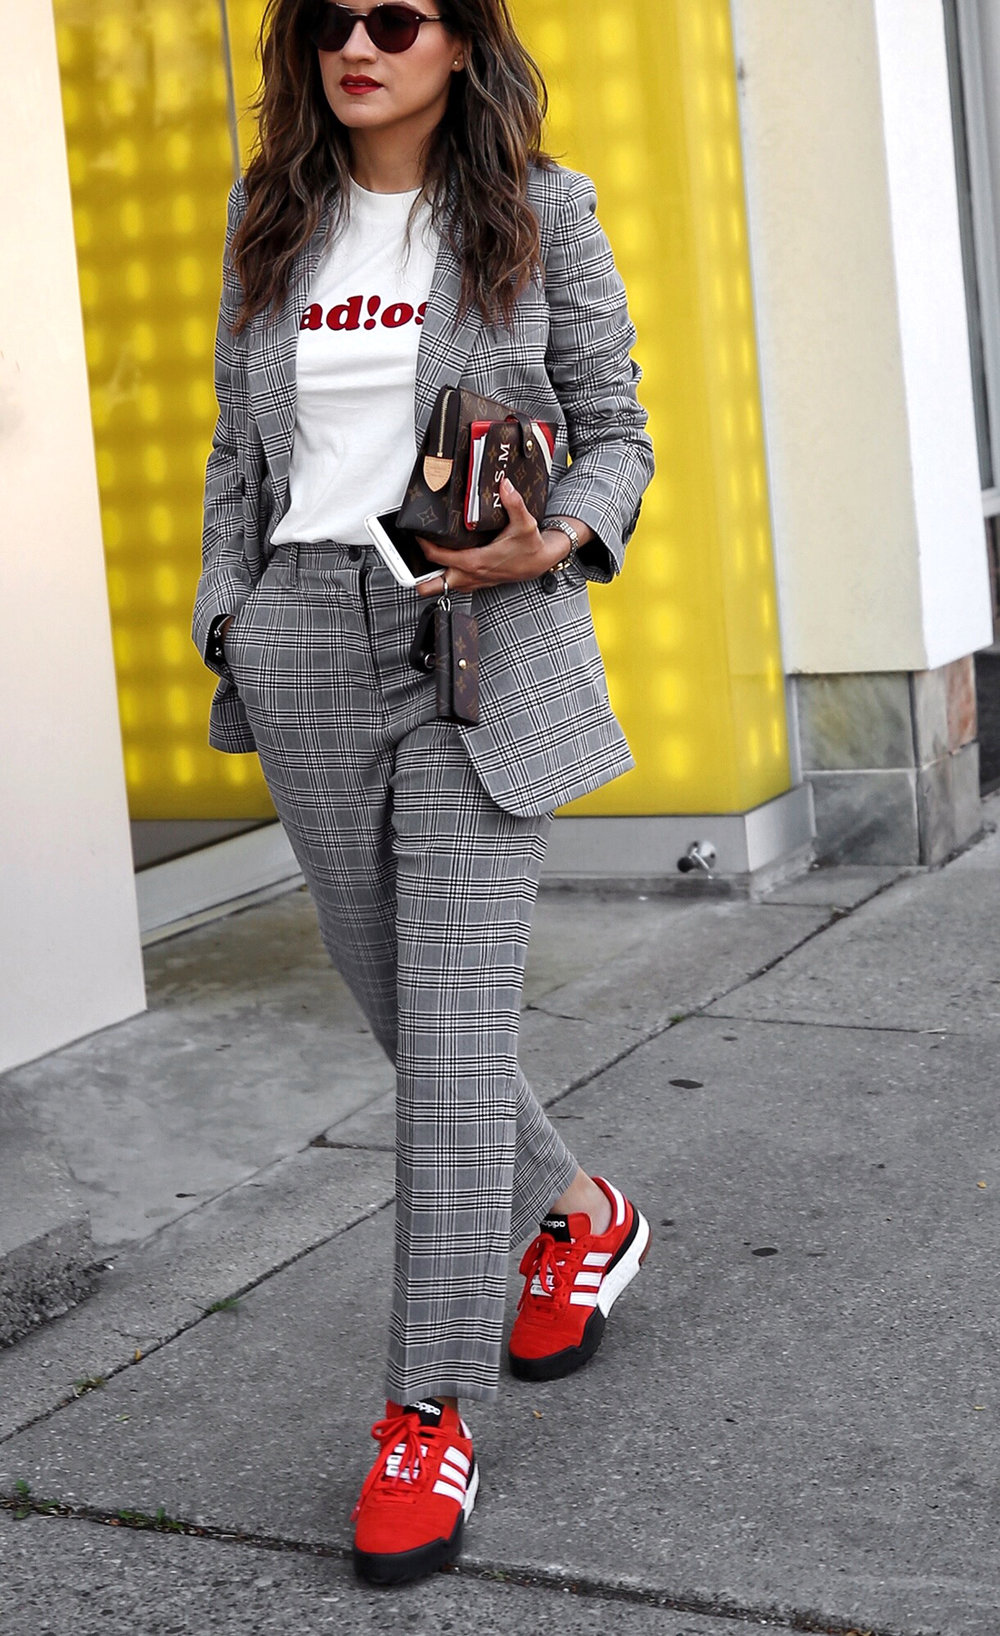 fw18 street style plaid suit women - menswear inspired - nordstrom - alexander wang Orange red AW BBall Soccer Sneakers, louis vuitton small agenda 6.JPG